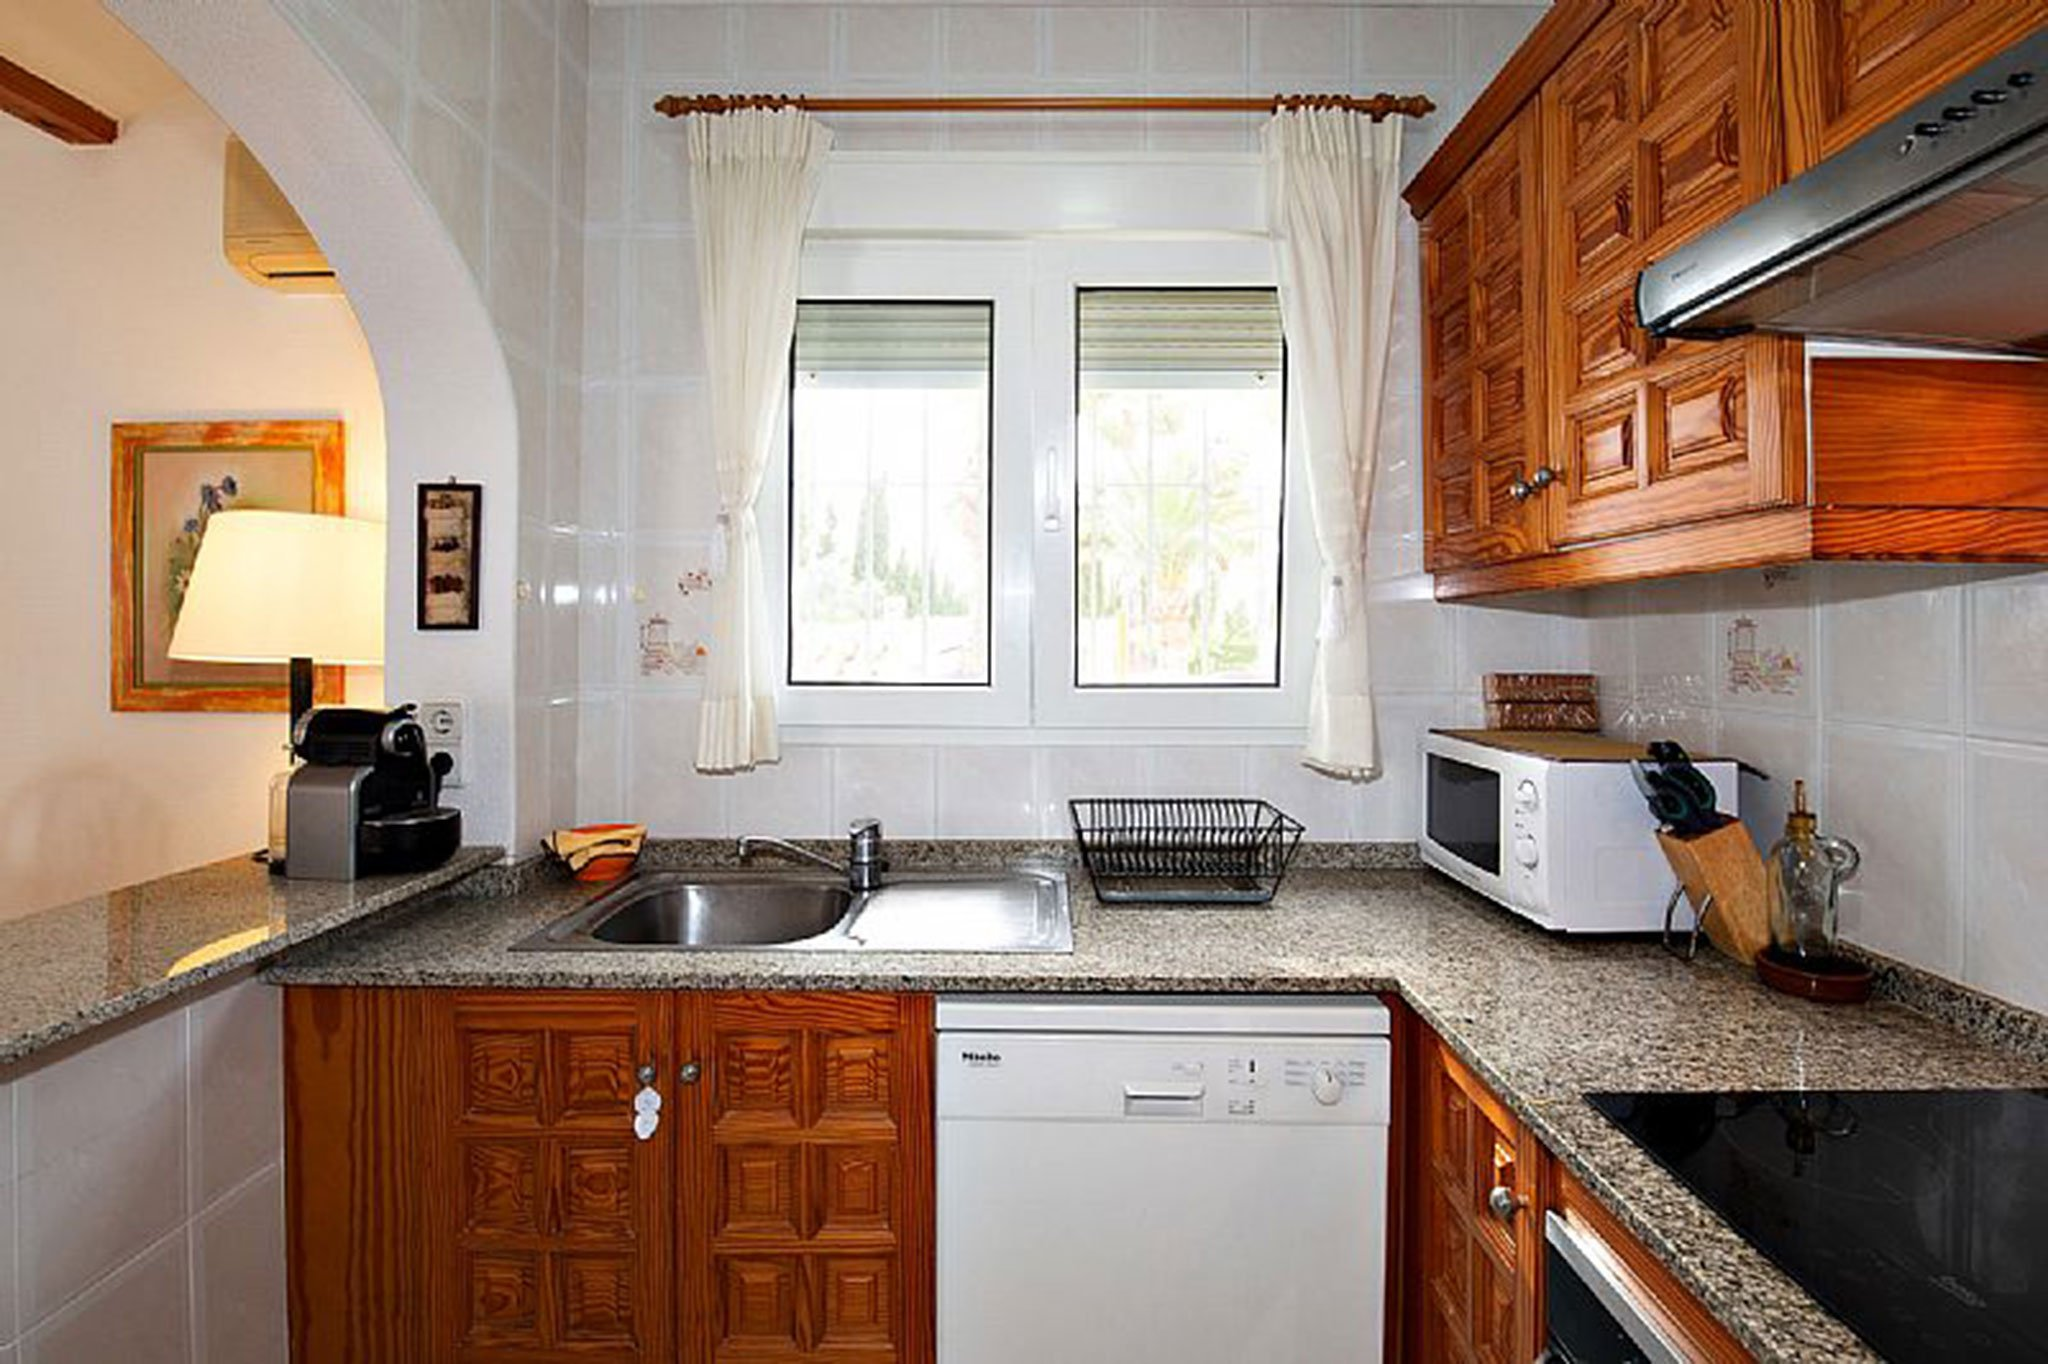 Kitchen of a chalet for sale in Dénia - Euroholding